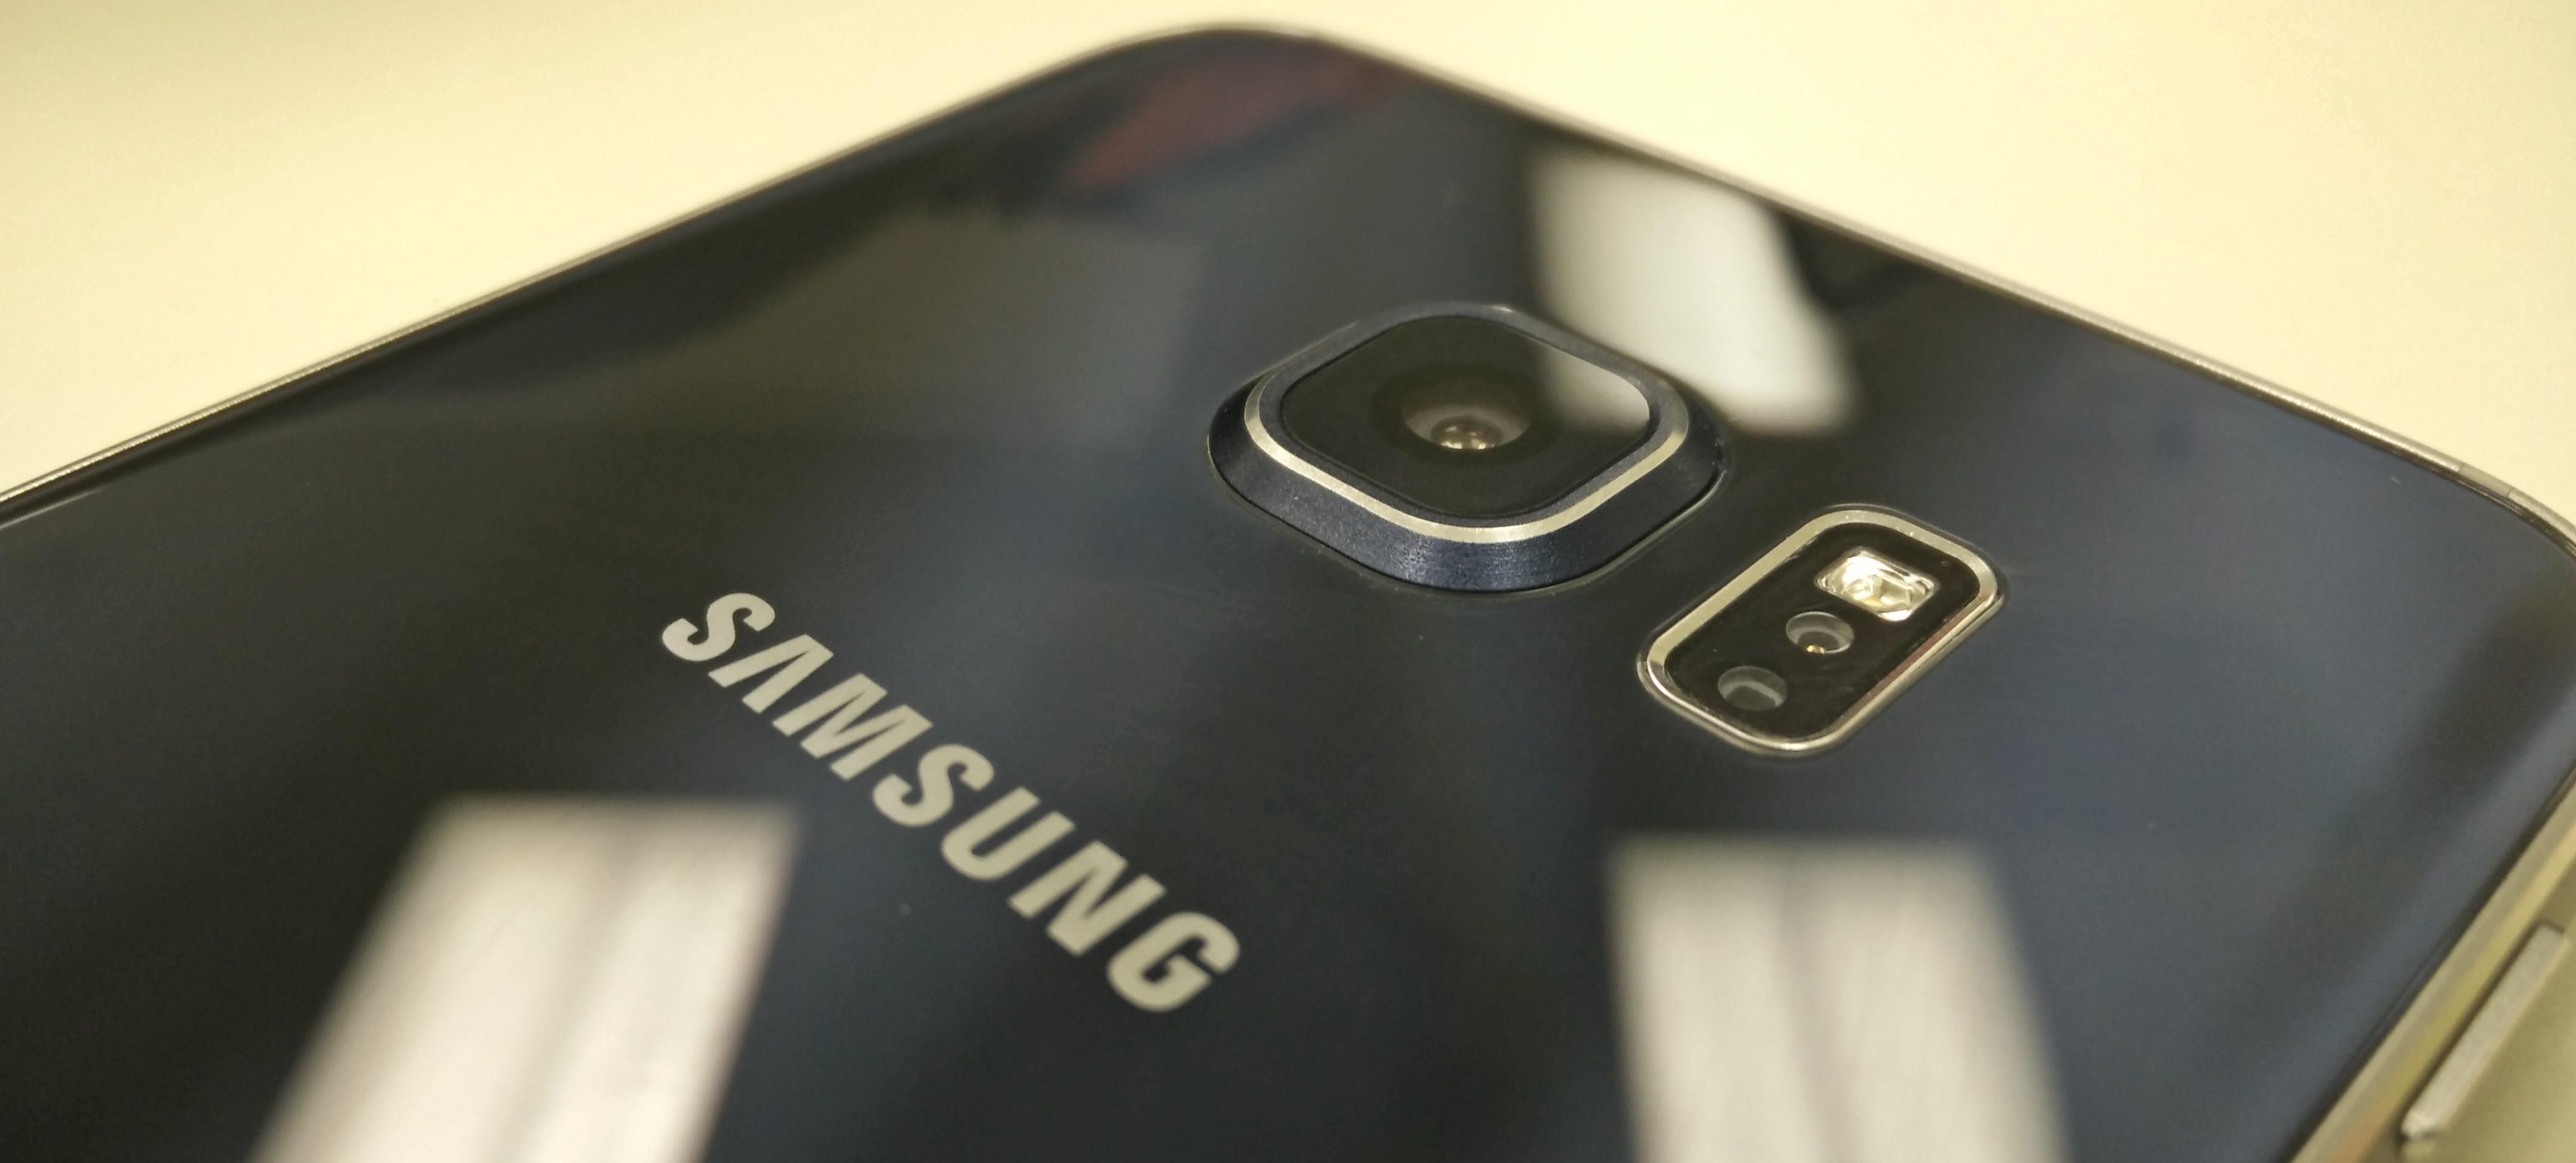 samsung galaxy s6 camera apk